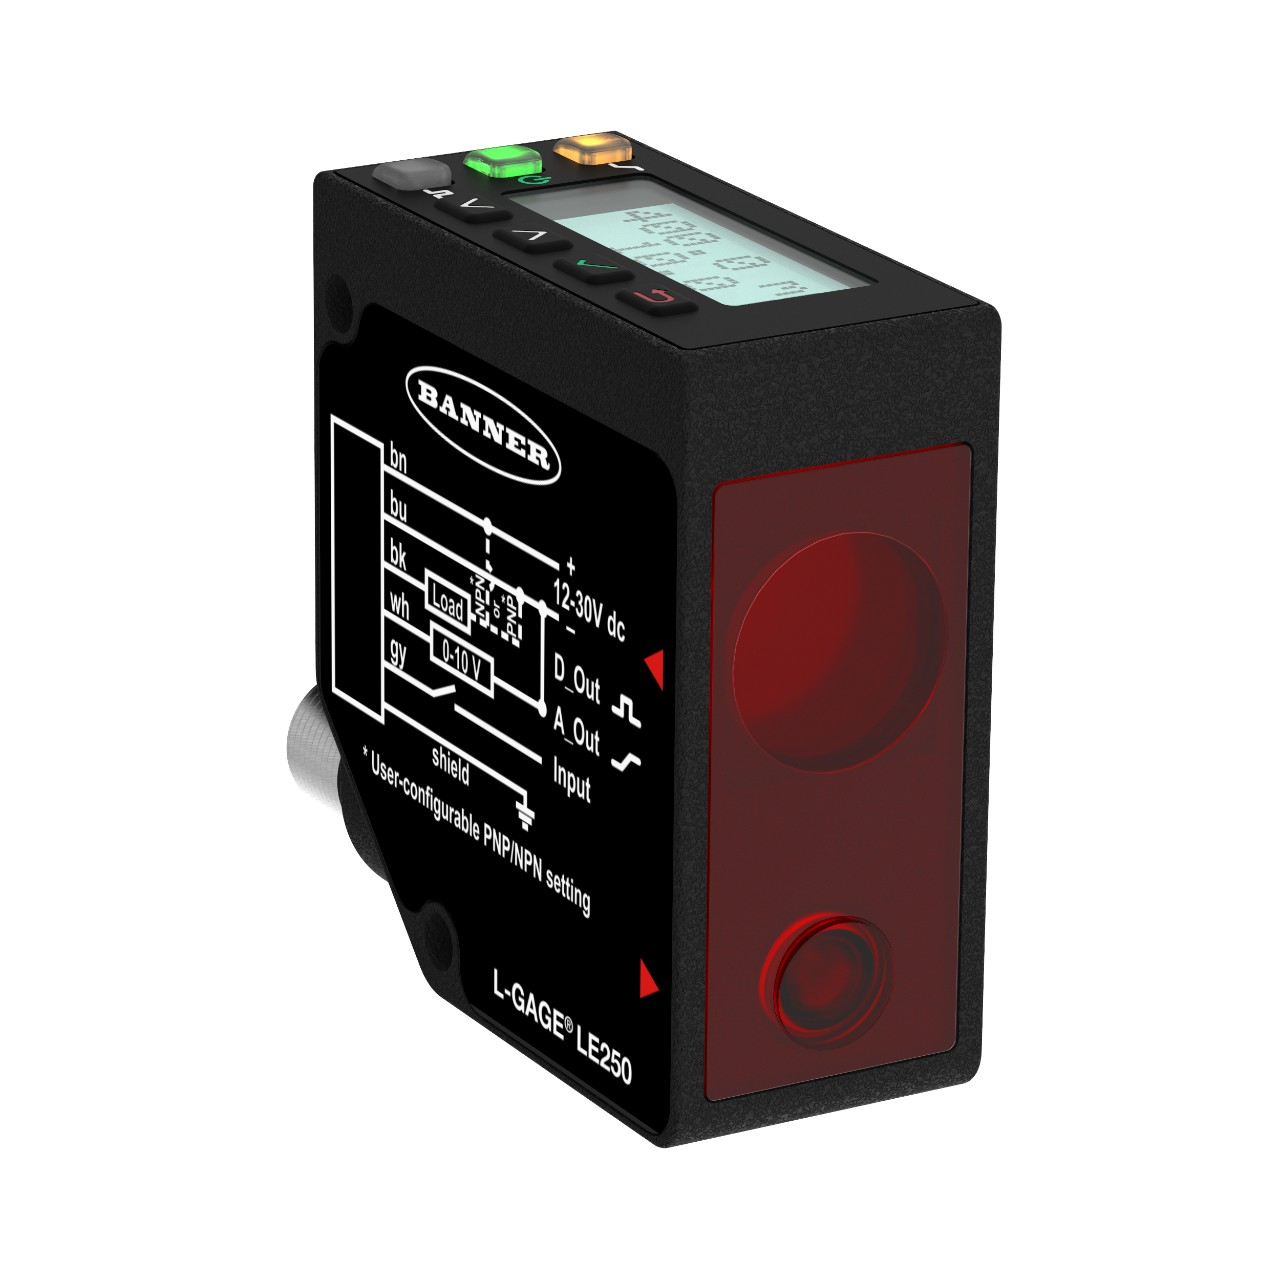 LE Series laser measurement sensor